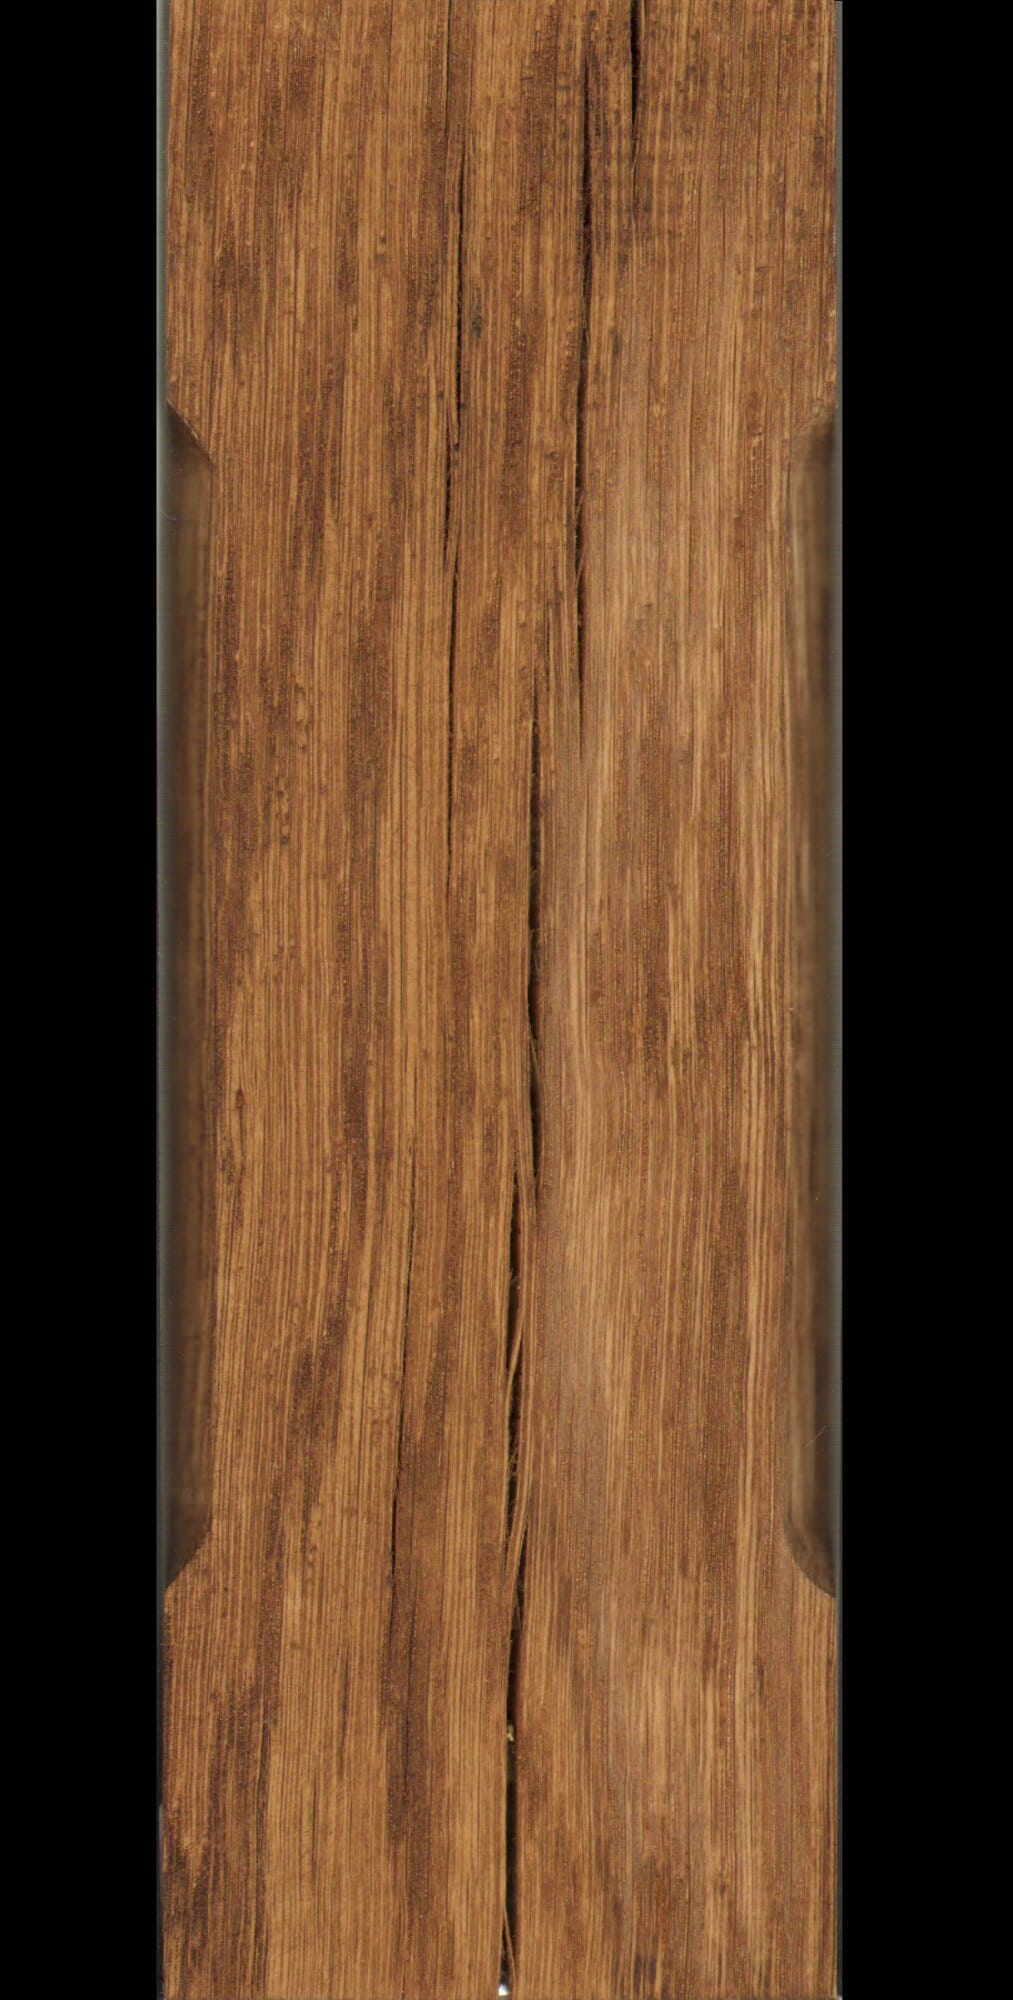 Oak Timber Wood Stains And Finishes